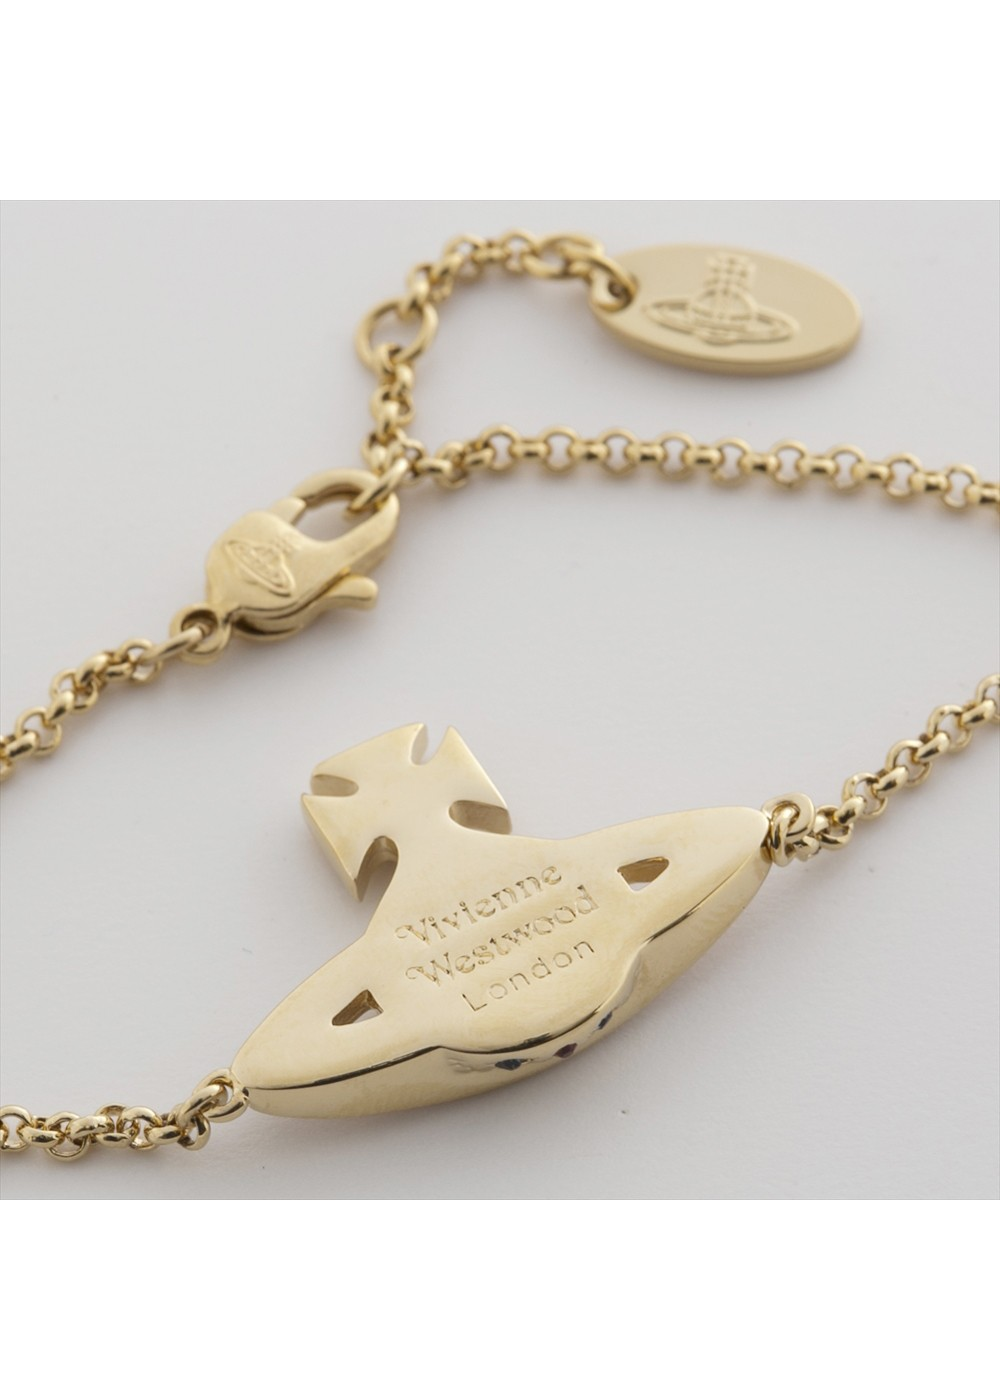 【最大64%OFF】JACK BAS RELIEF BRACELE|GOLD|ブレスレット|Vivienne Westwood